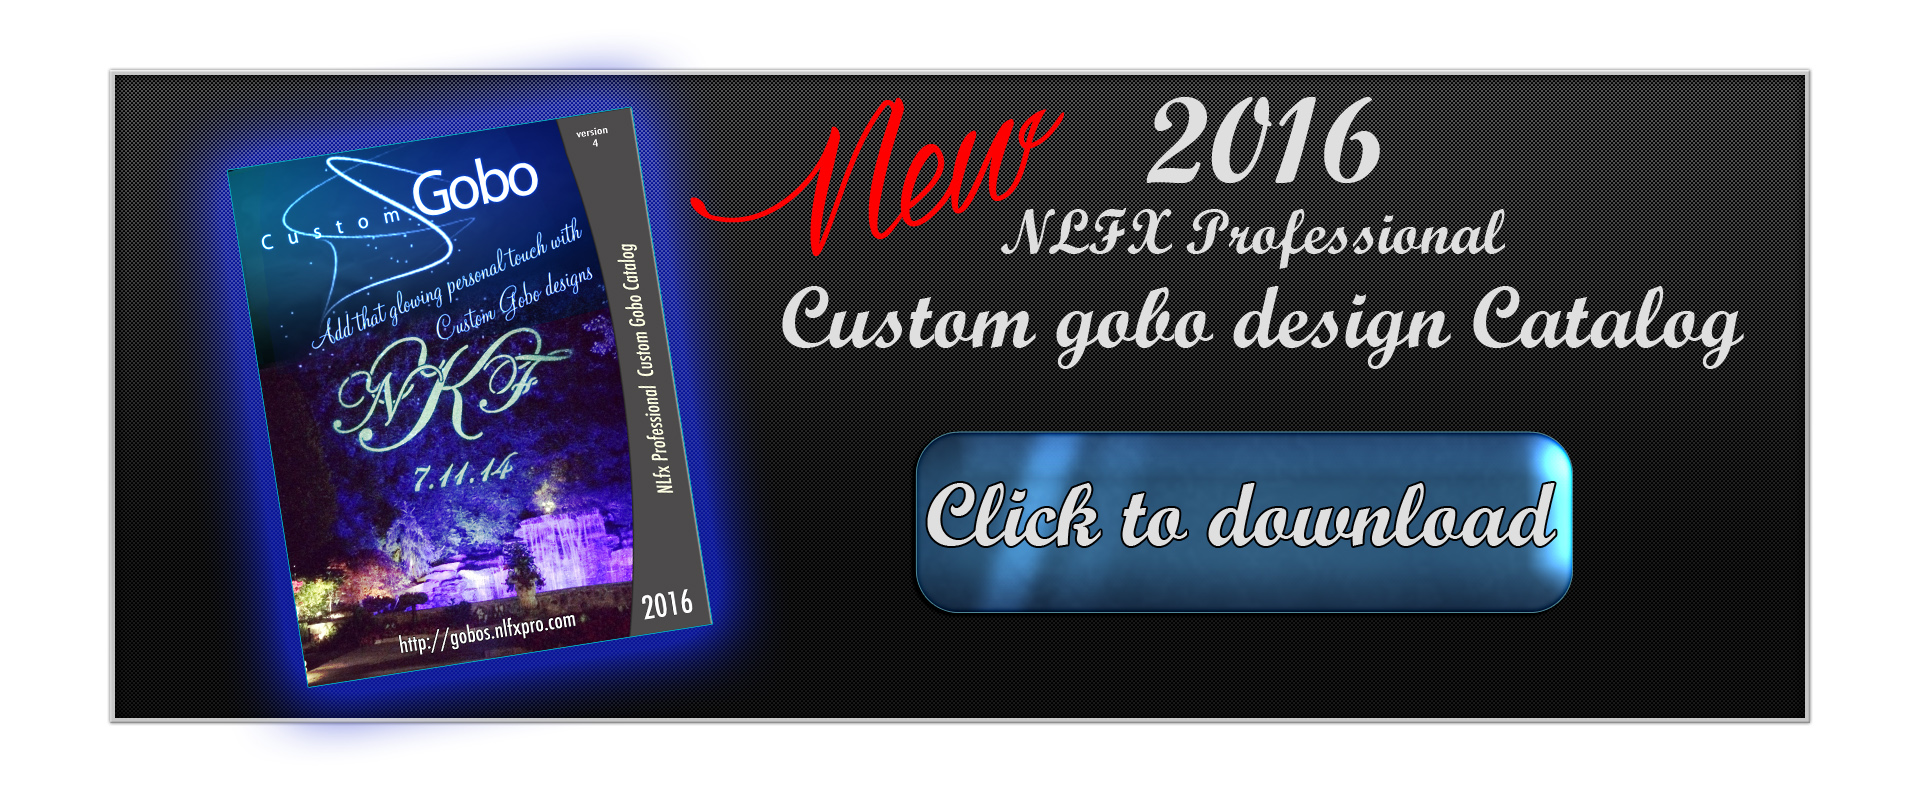 NLFX Gobo Design Catalog for 2016